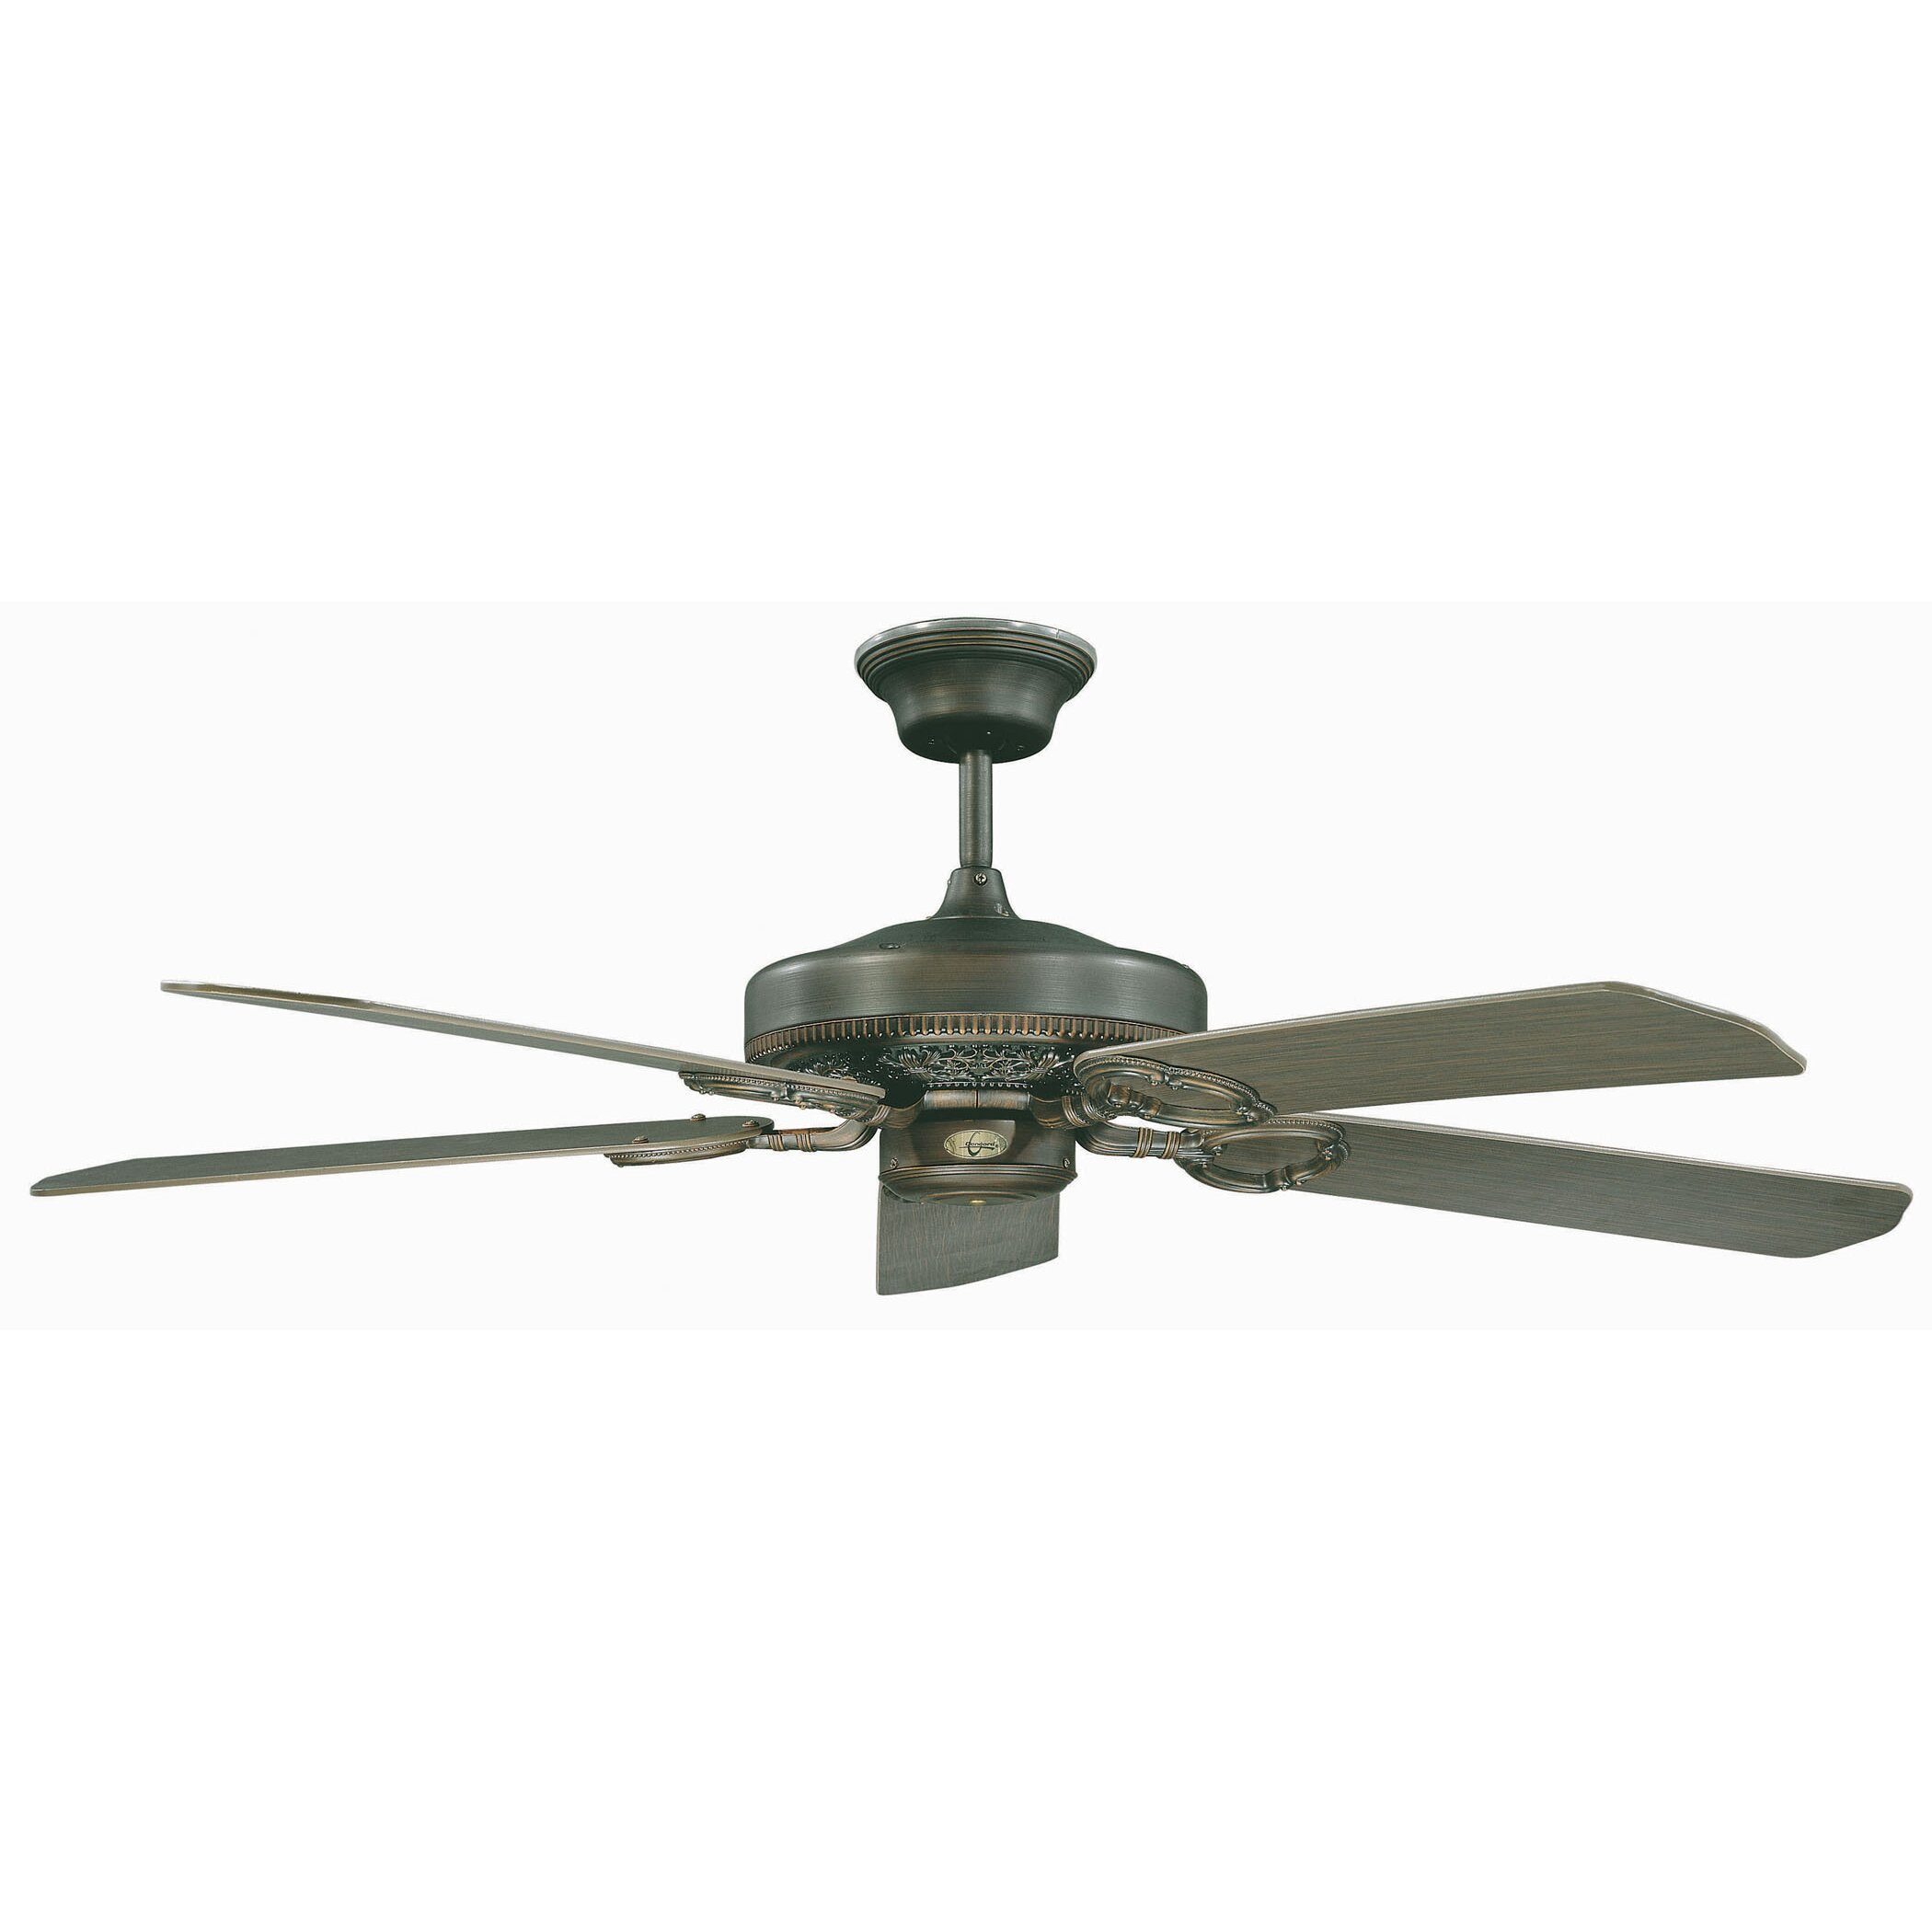 Concord Ceiling Fan Wiring Diagram : Concord ceiling fans parts wanted imagery